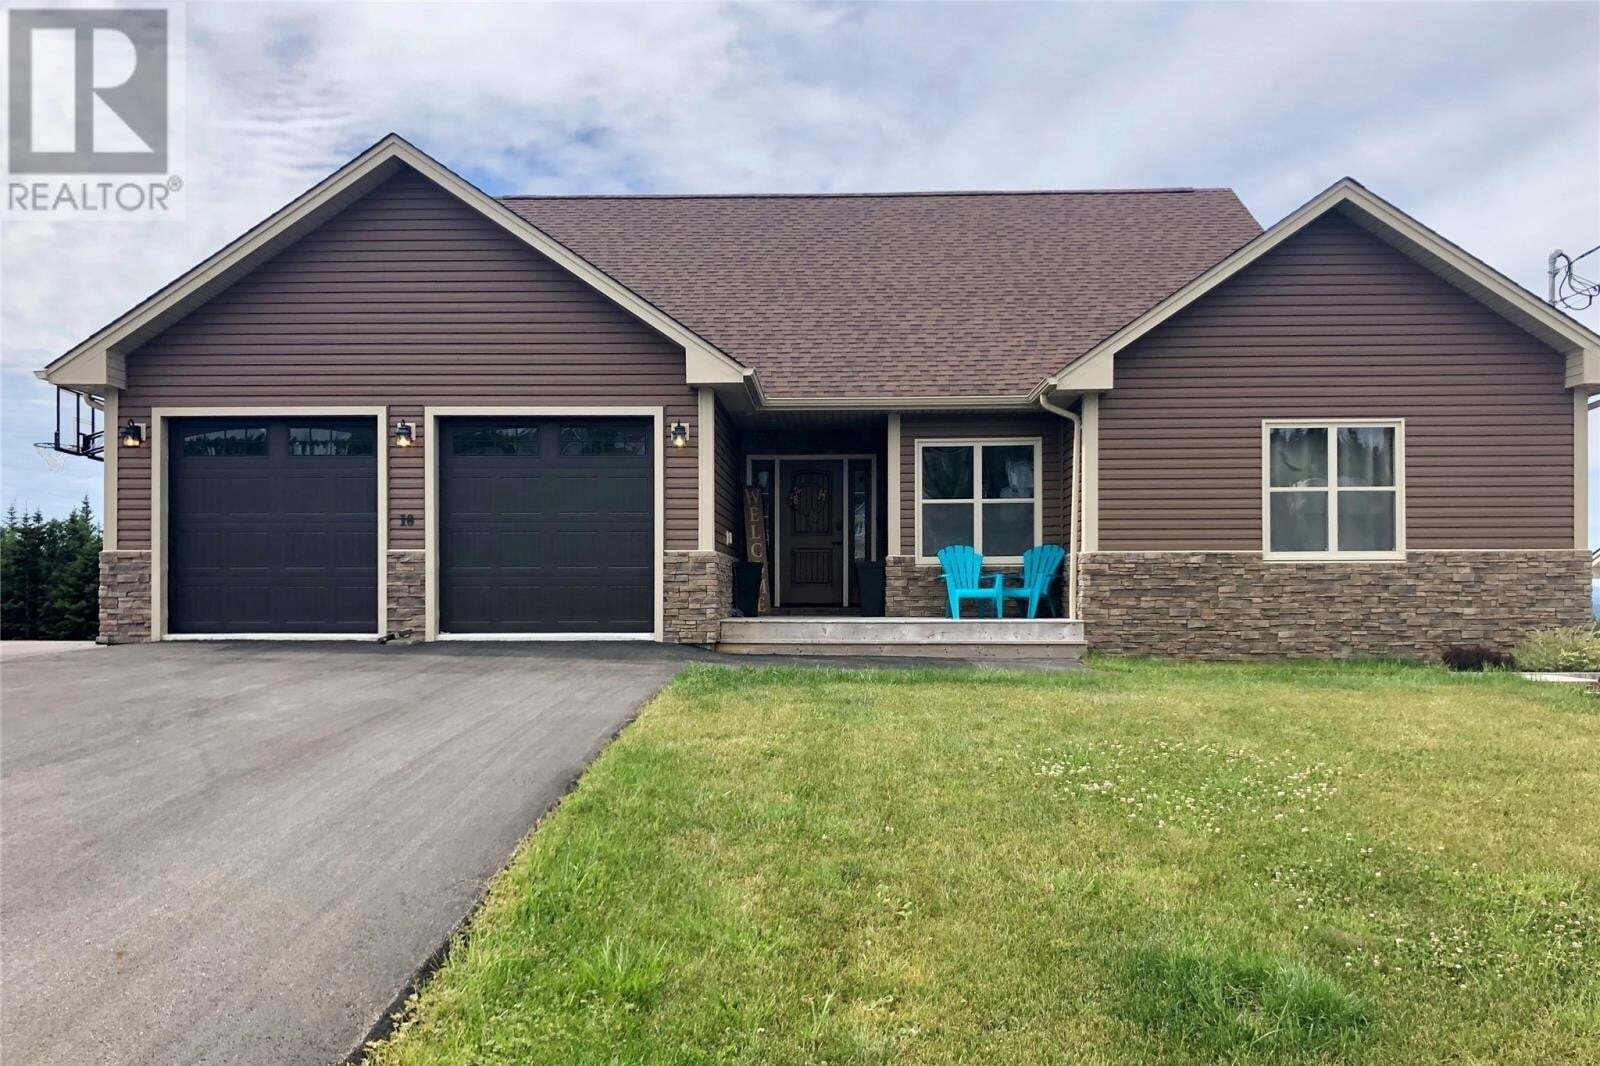 House for sale at 16 Miller Cres Massey Drive Newfoundland - MLS: 1219423